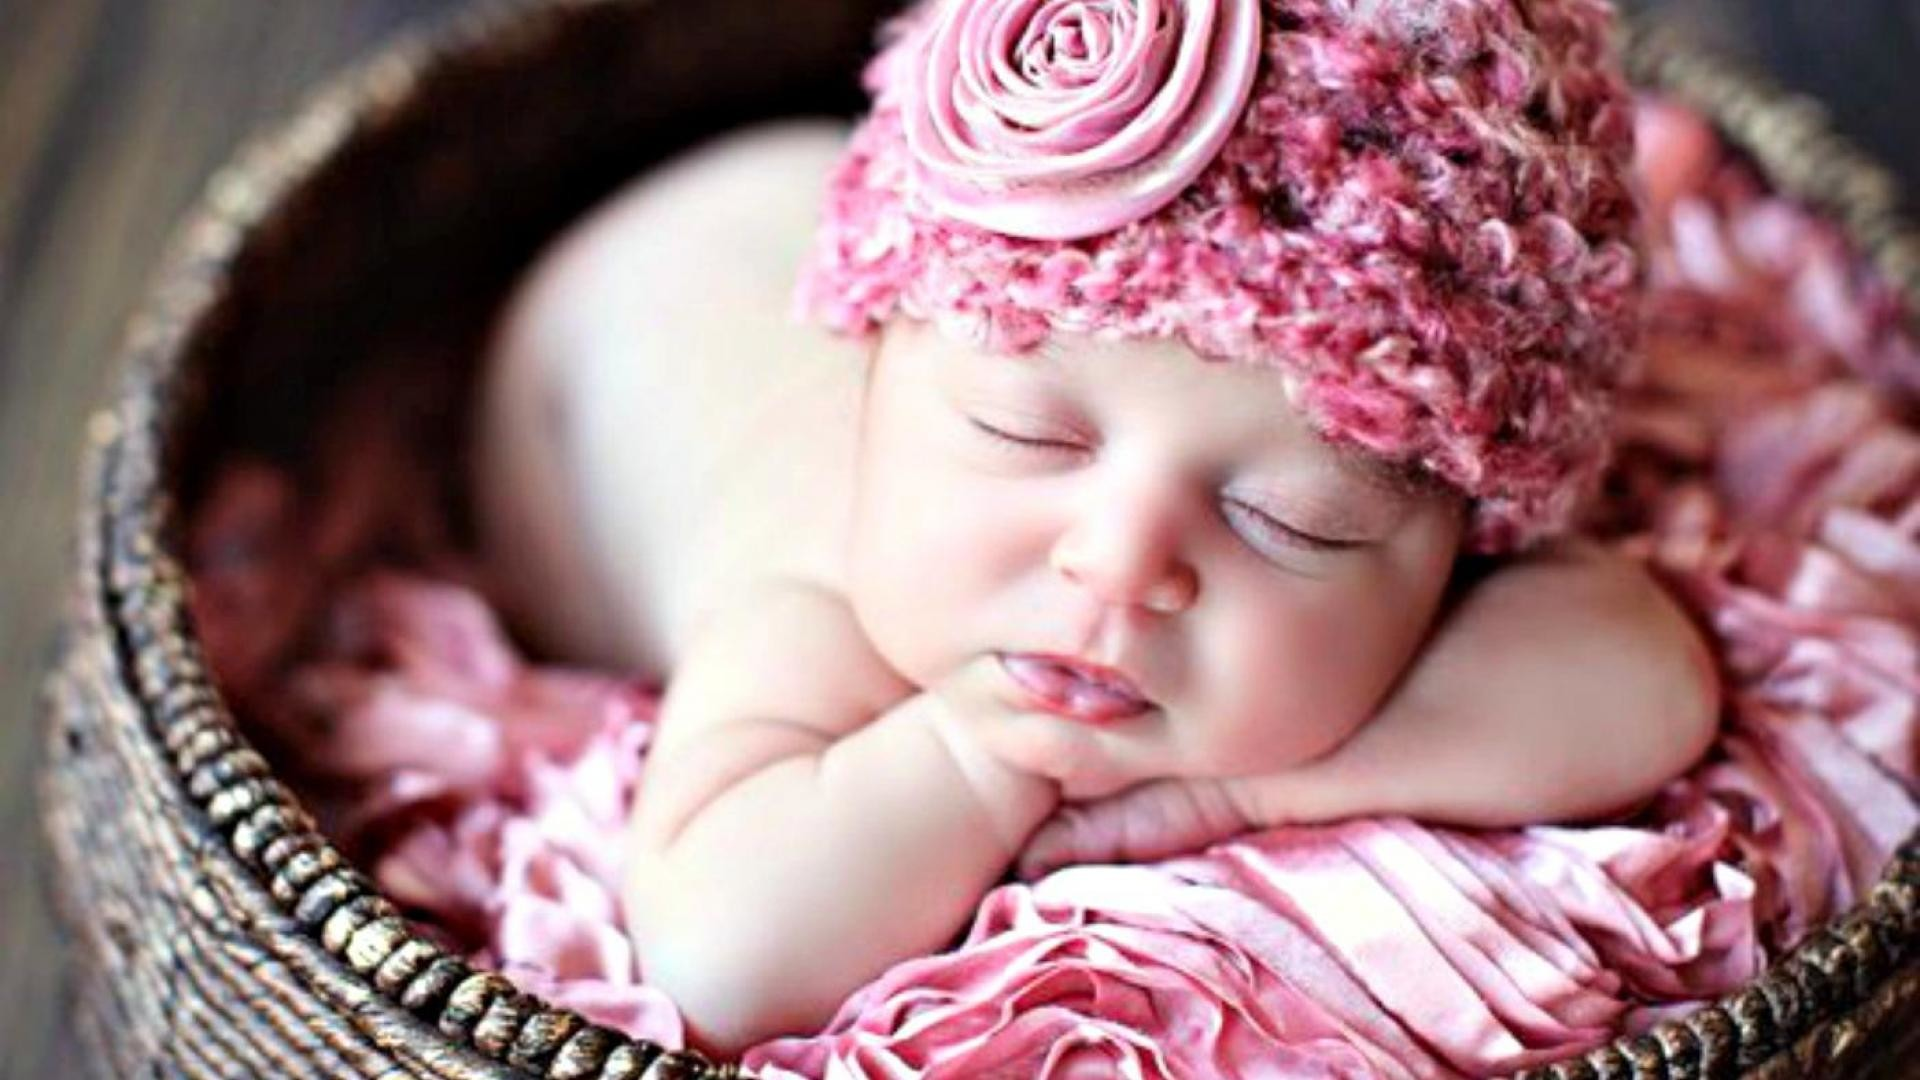 Cute Little Dolls Hd Wallpapers Cute Baby Pics Wallpapers 64 Images